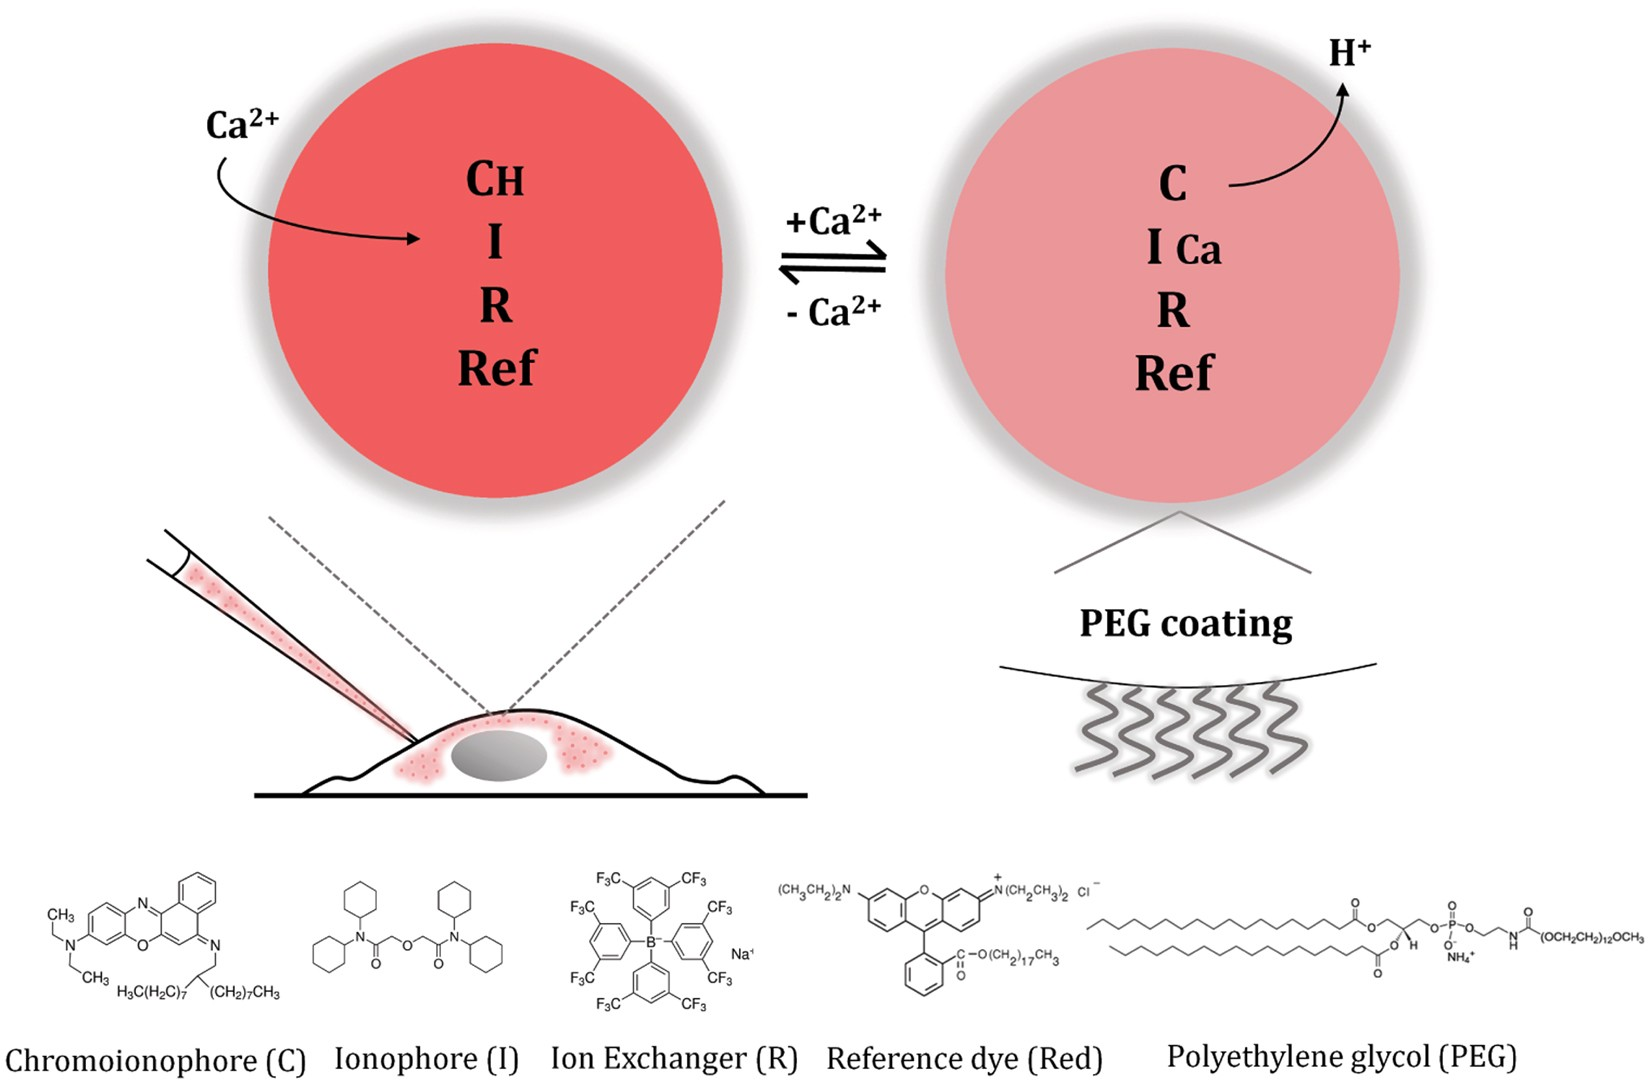 A method for estimating intracellular ion concentration